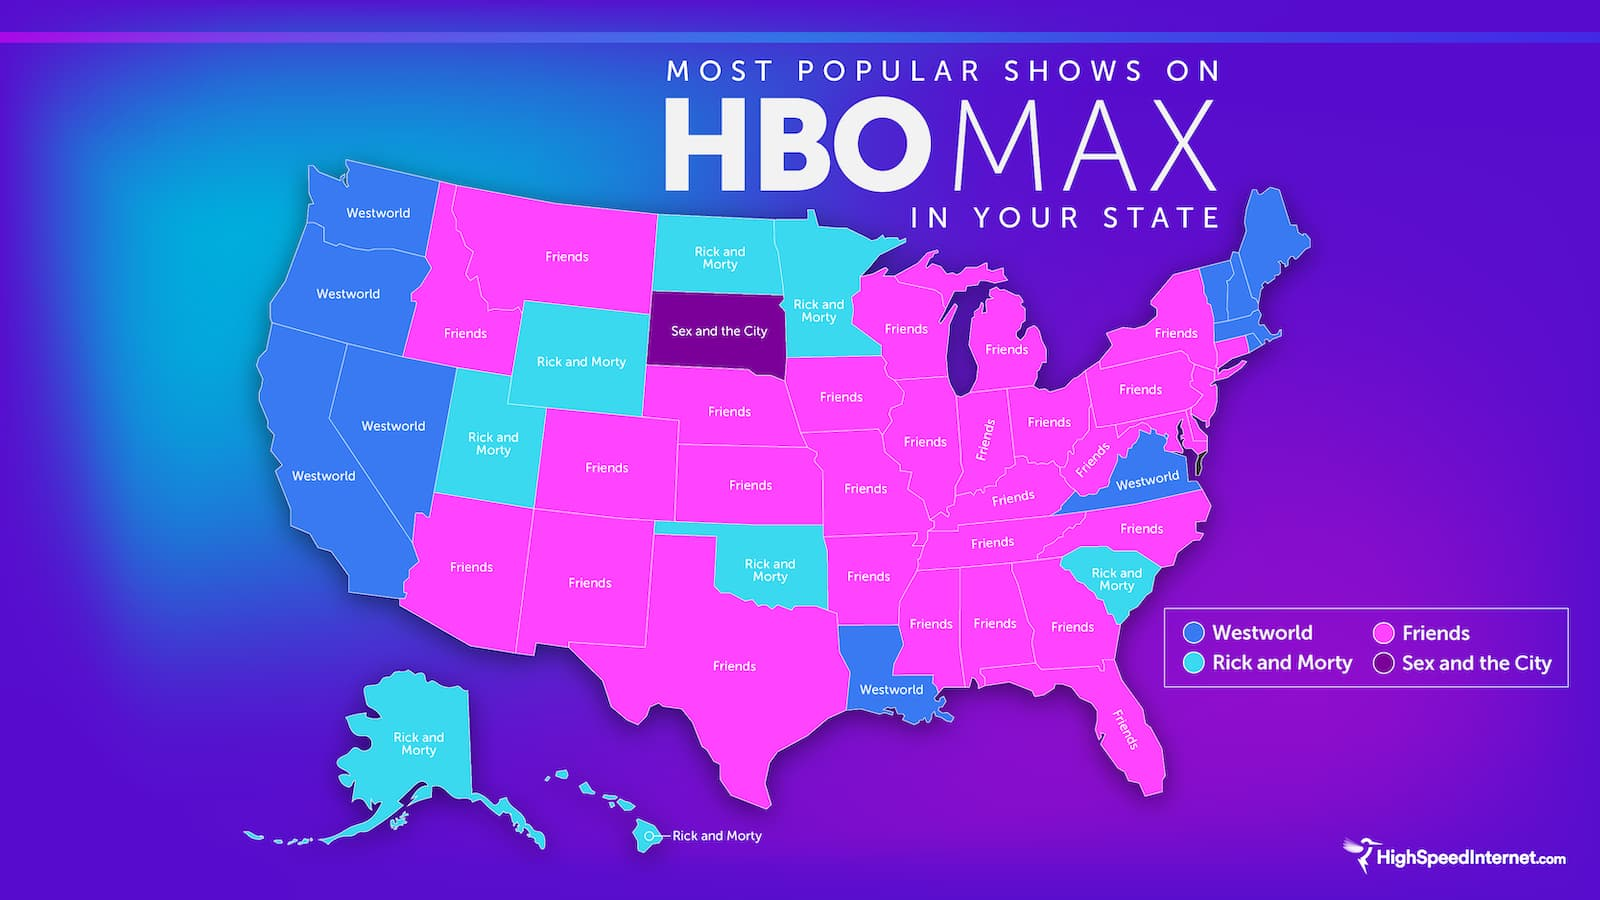 Each State's Favorite H B O Max Show